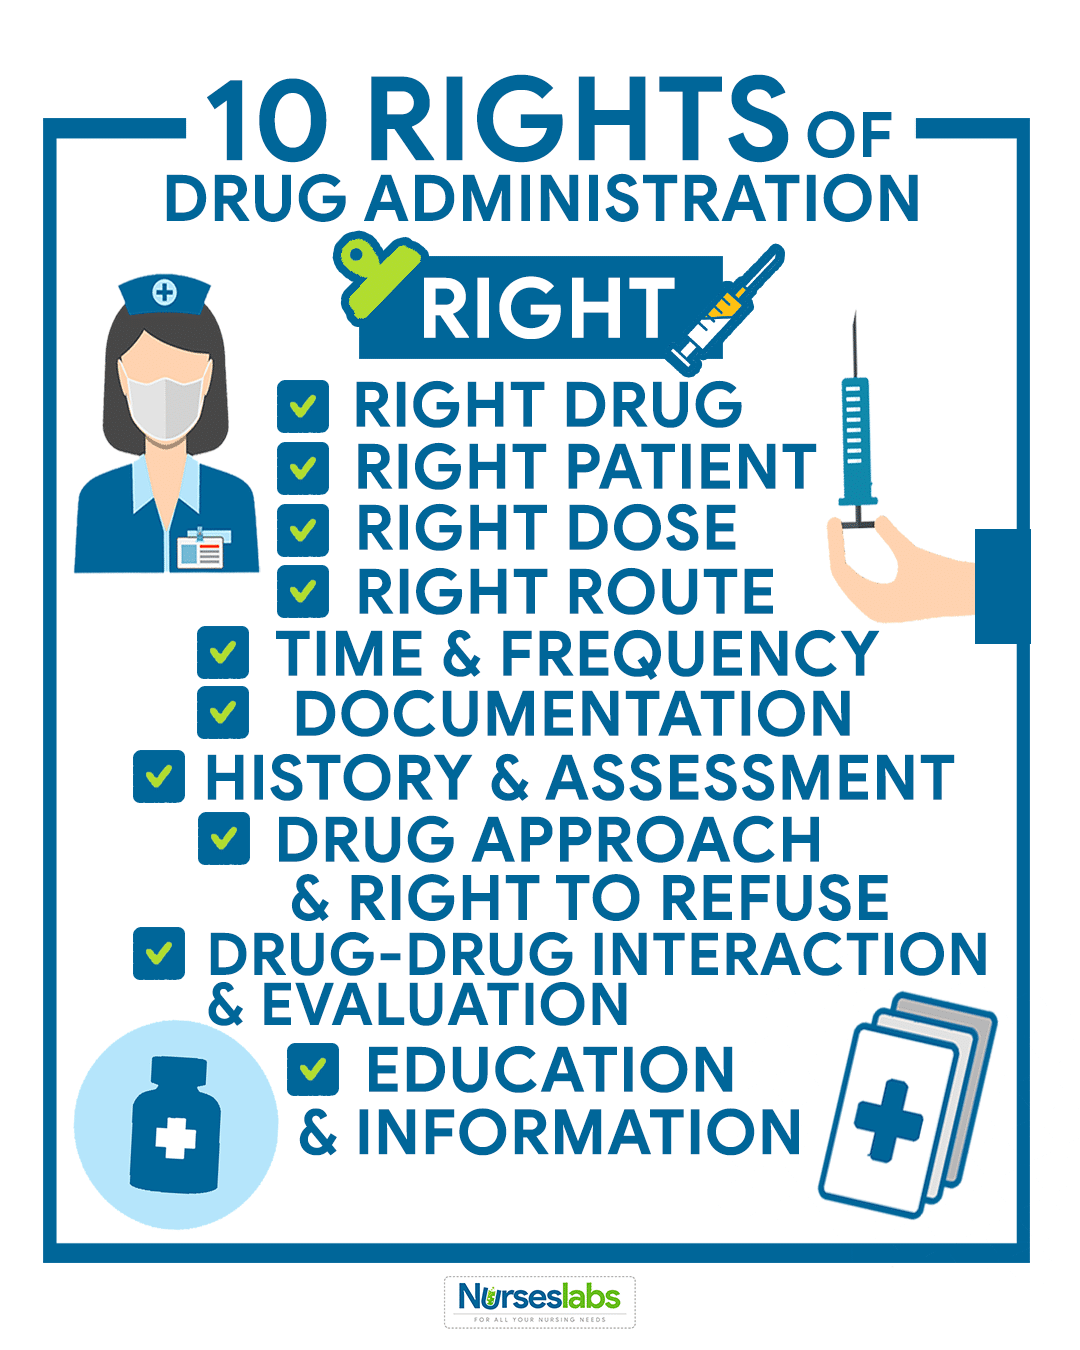 Nine Out Of Ten Nurses Agree >> The 10 Rights Of Drug Administration Nurseslabs